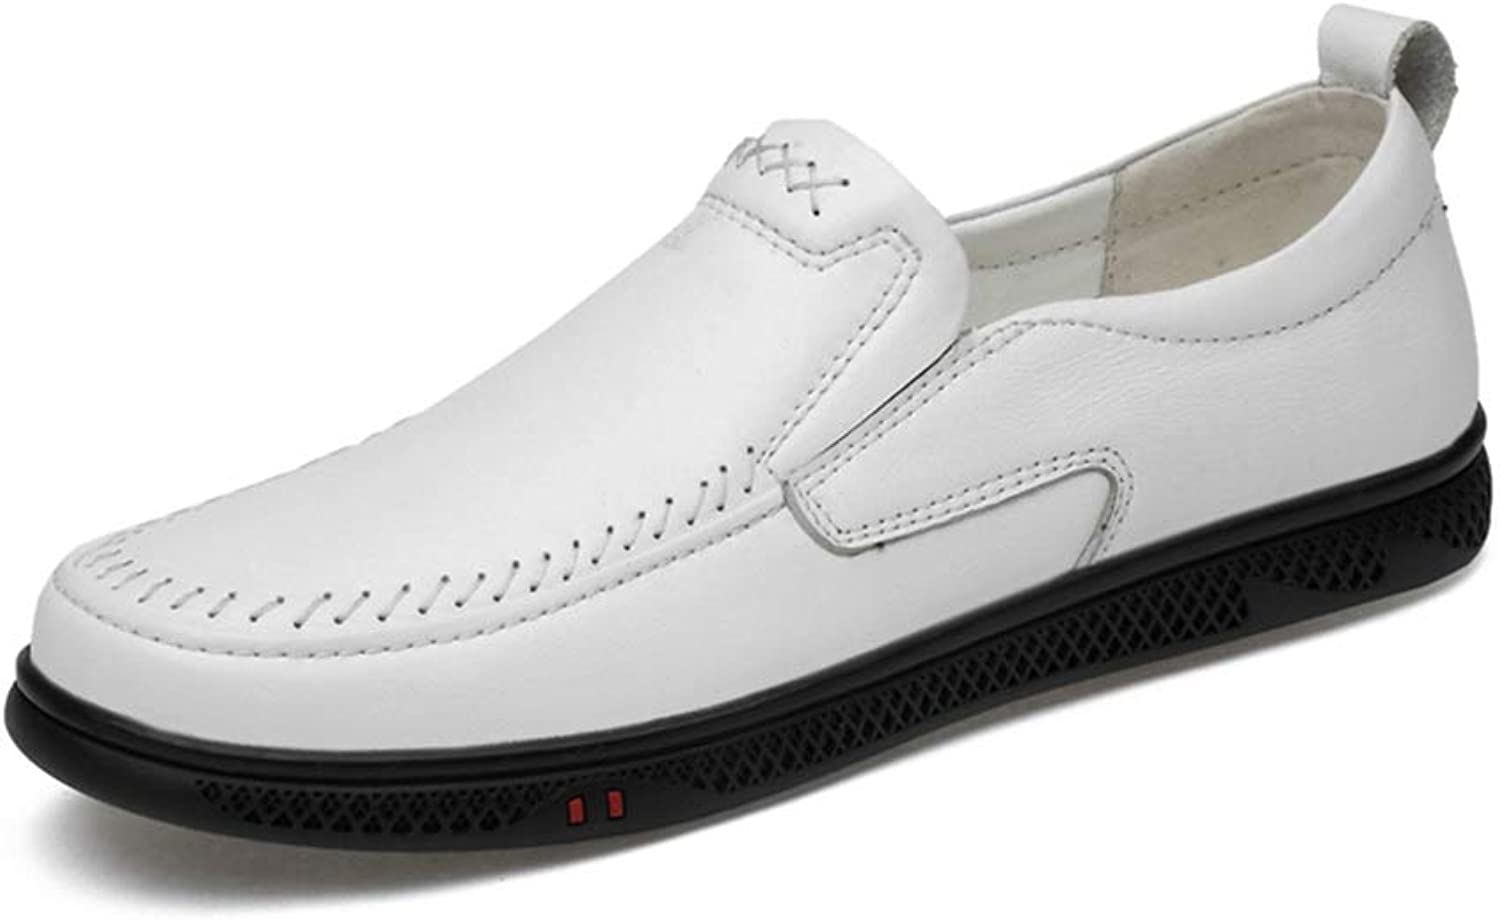 MUMUWU Men's Classic Oxford shoes Casual Loafer Comfortable Perforated Flat Leather Upper Round Toe (color   White, Size   9.5 D(M) US)